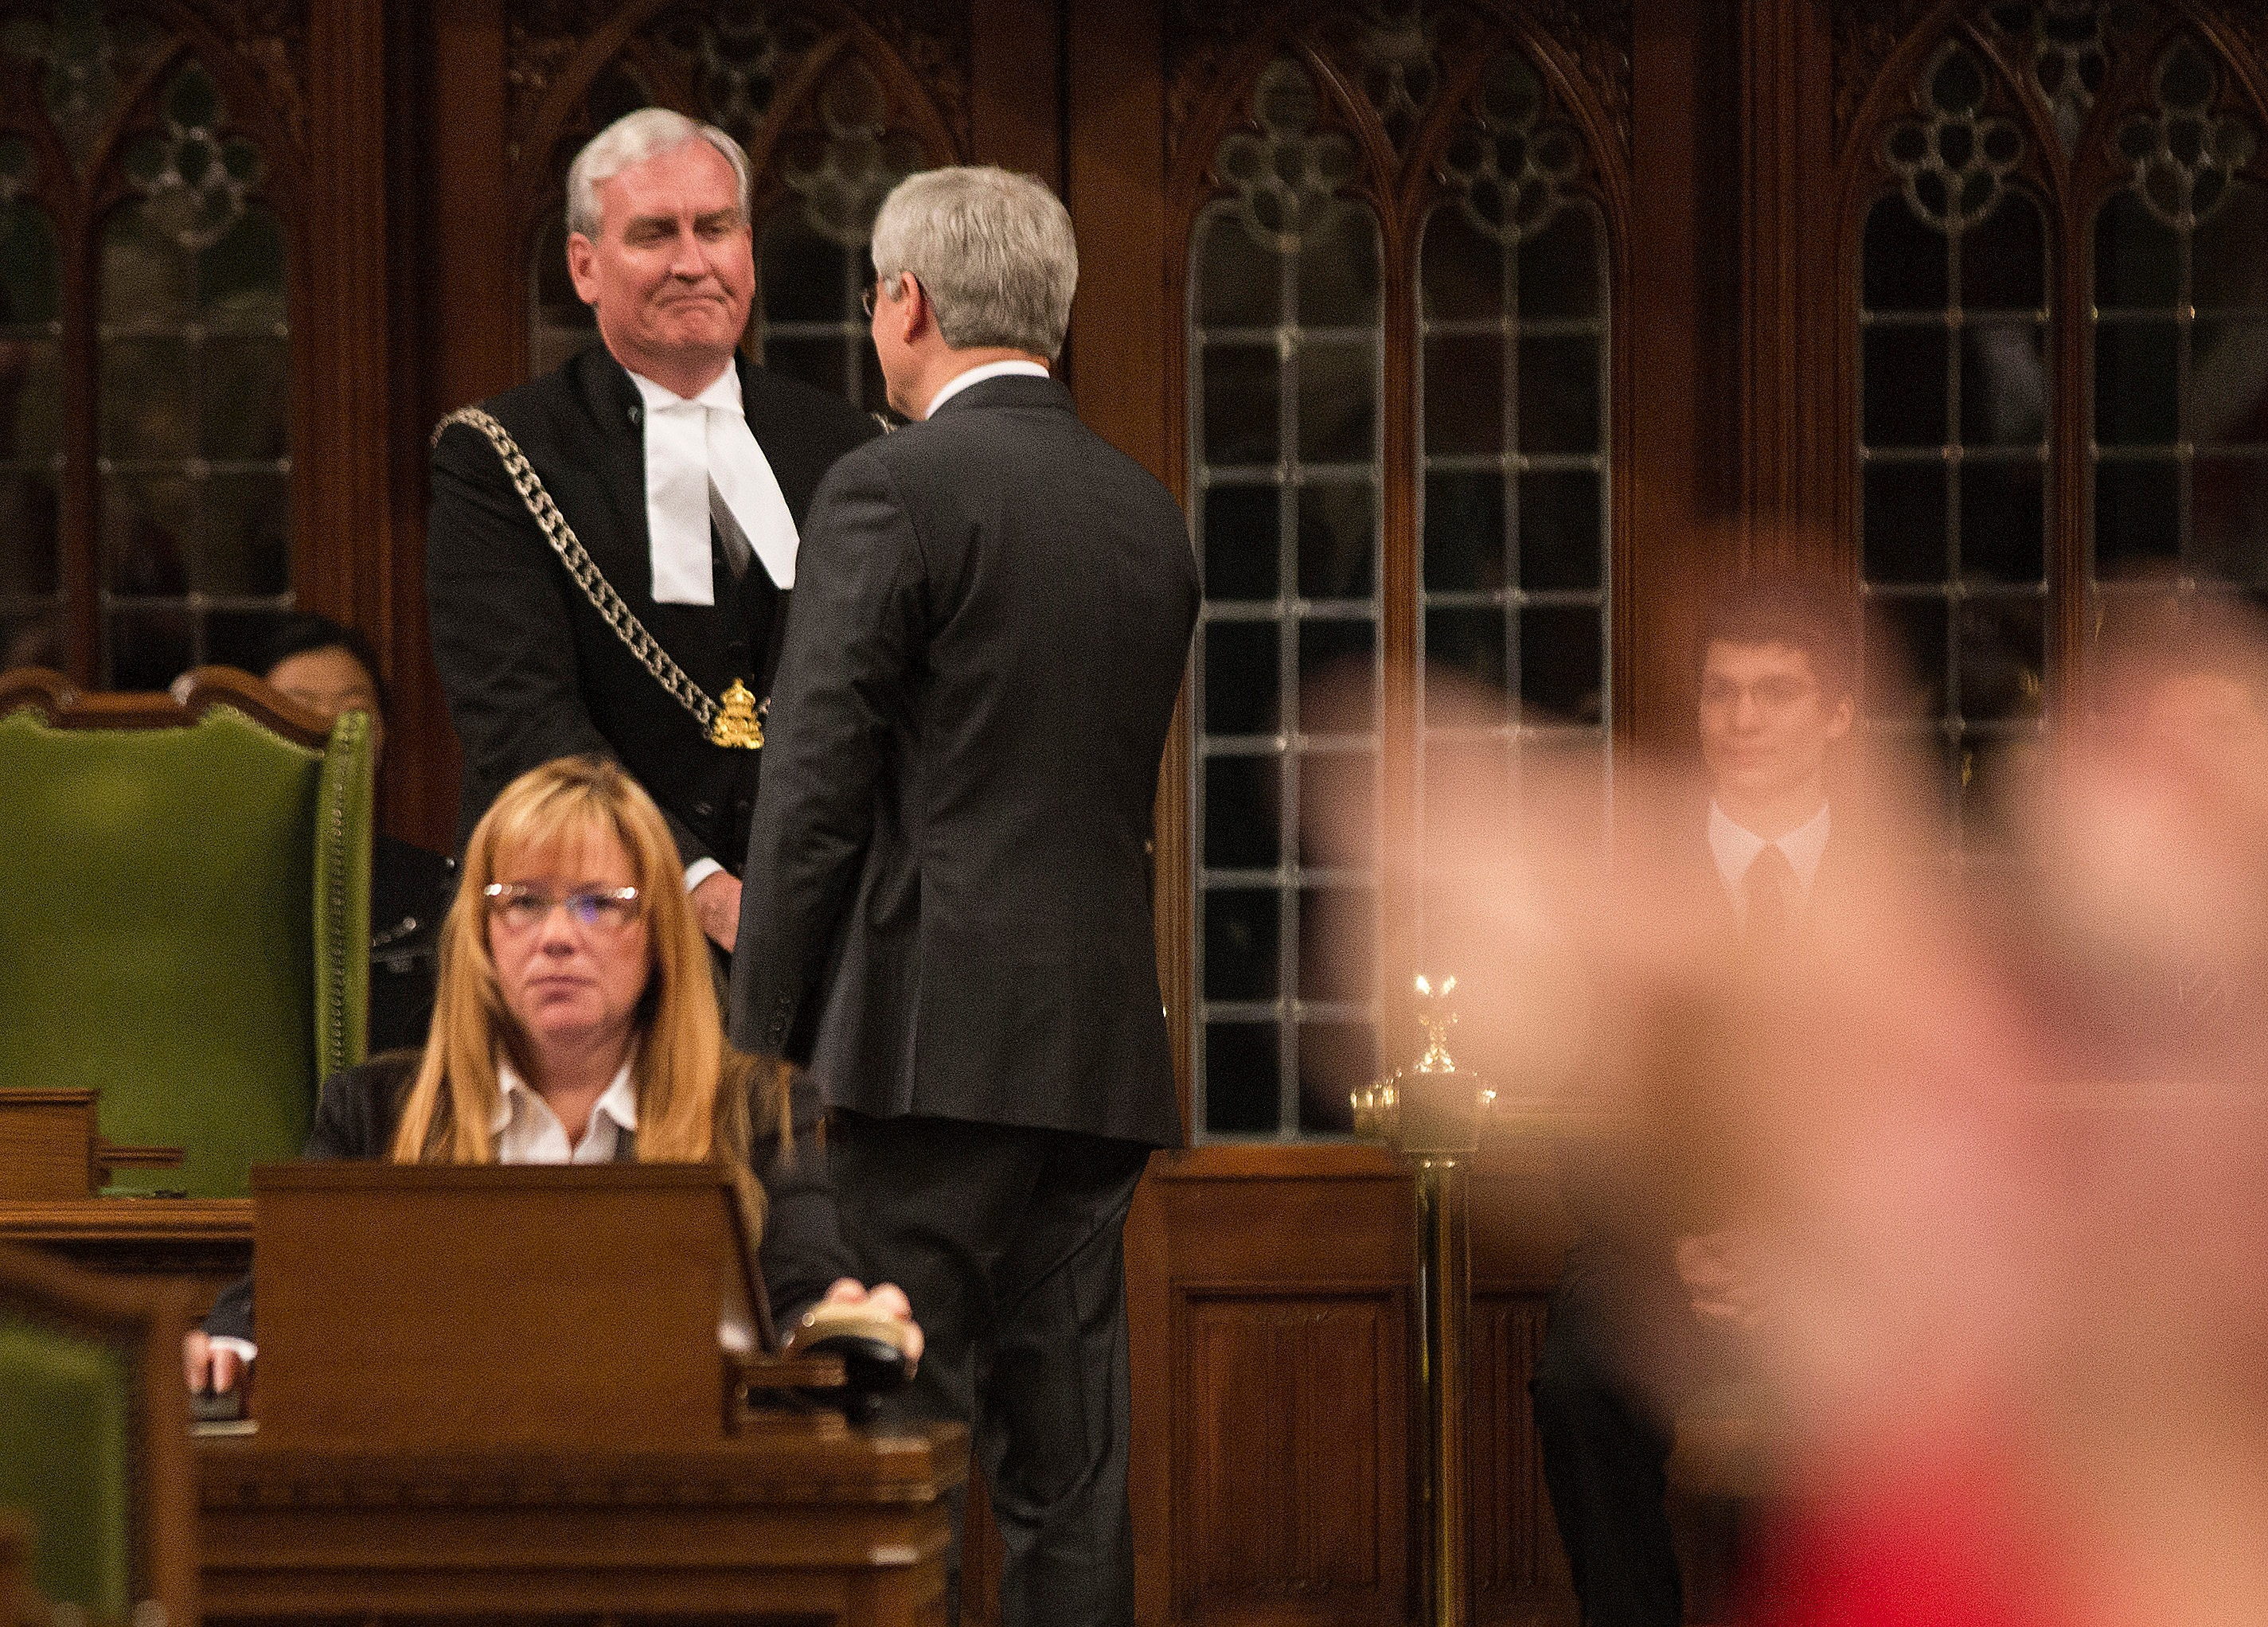 In this handout photo provided by the PMO, Prime Minister Stephen Harper shakes hands with Kevin Vickers, Sergeant-at-Arms, following his remarks in the House of Commons addressing the attacks in the Nation's Capital, on October 23, 2014 in Ottawa, Canada.